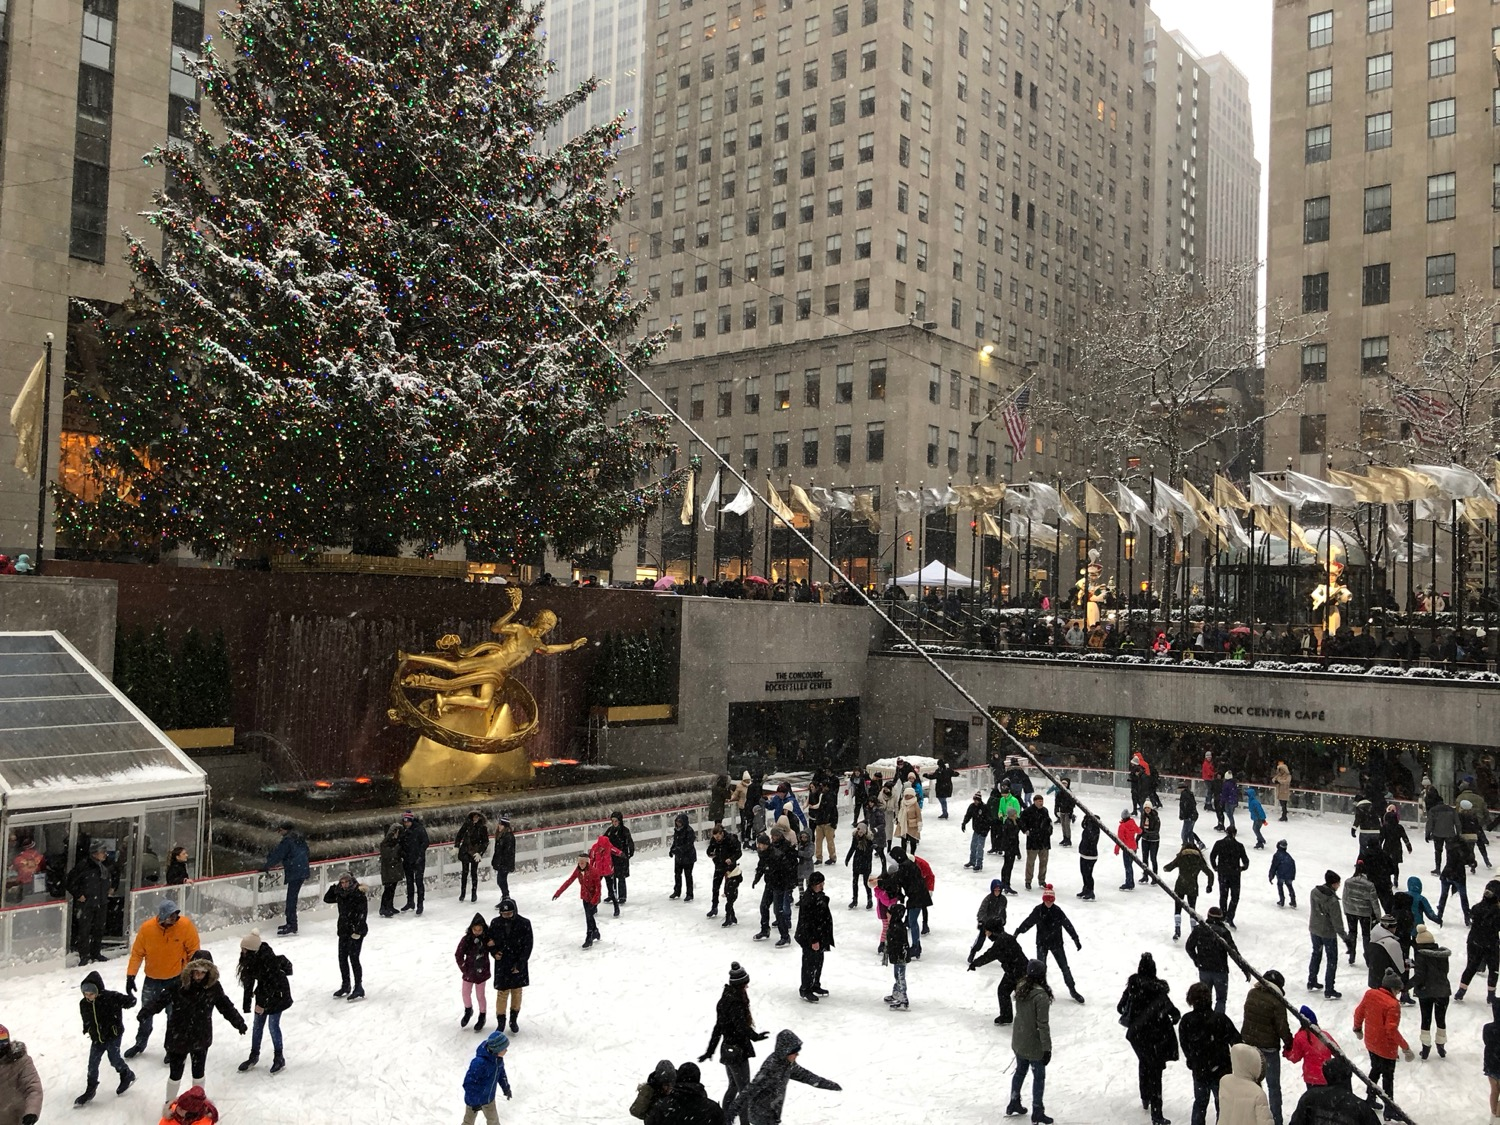 Rockefeller Center, with the huge tree and the skating rink.